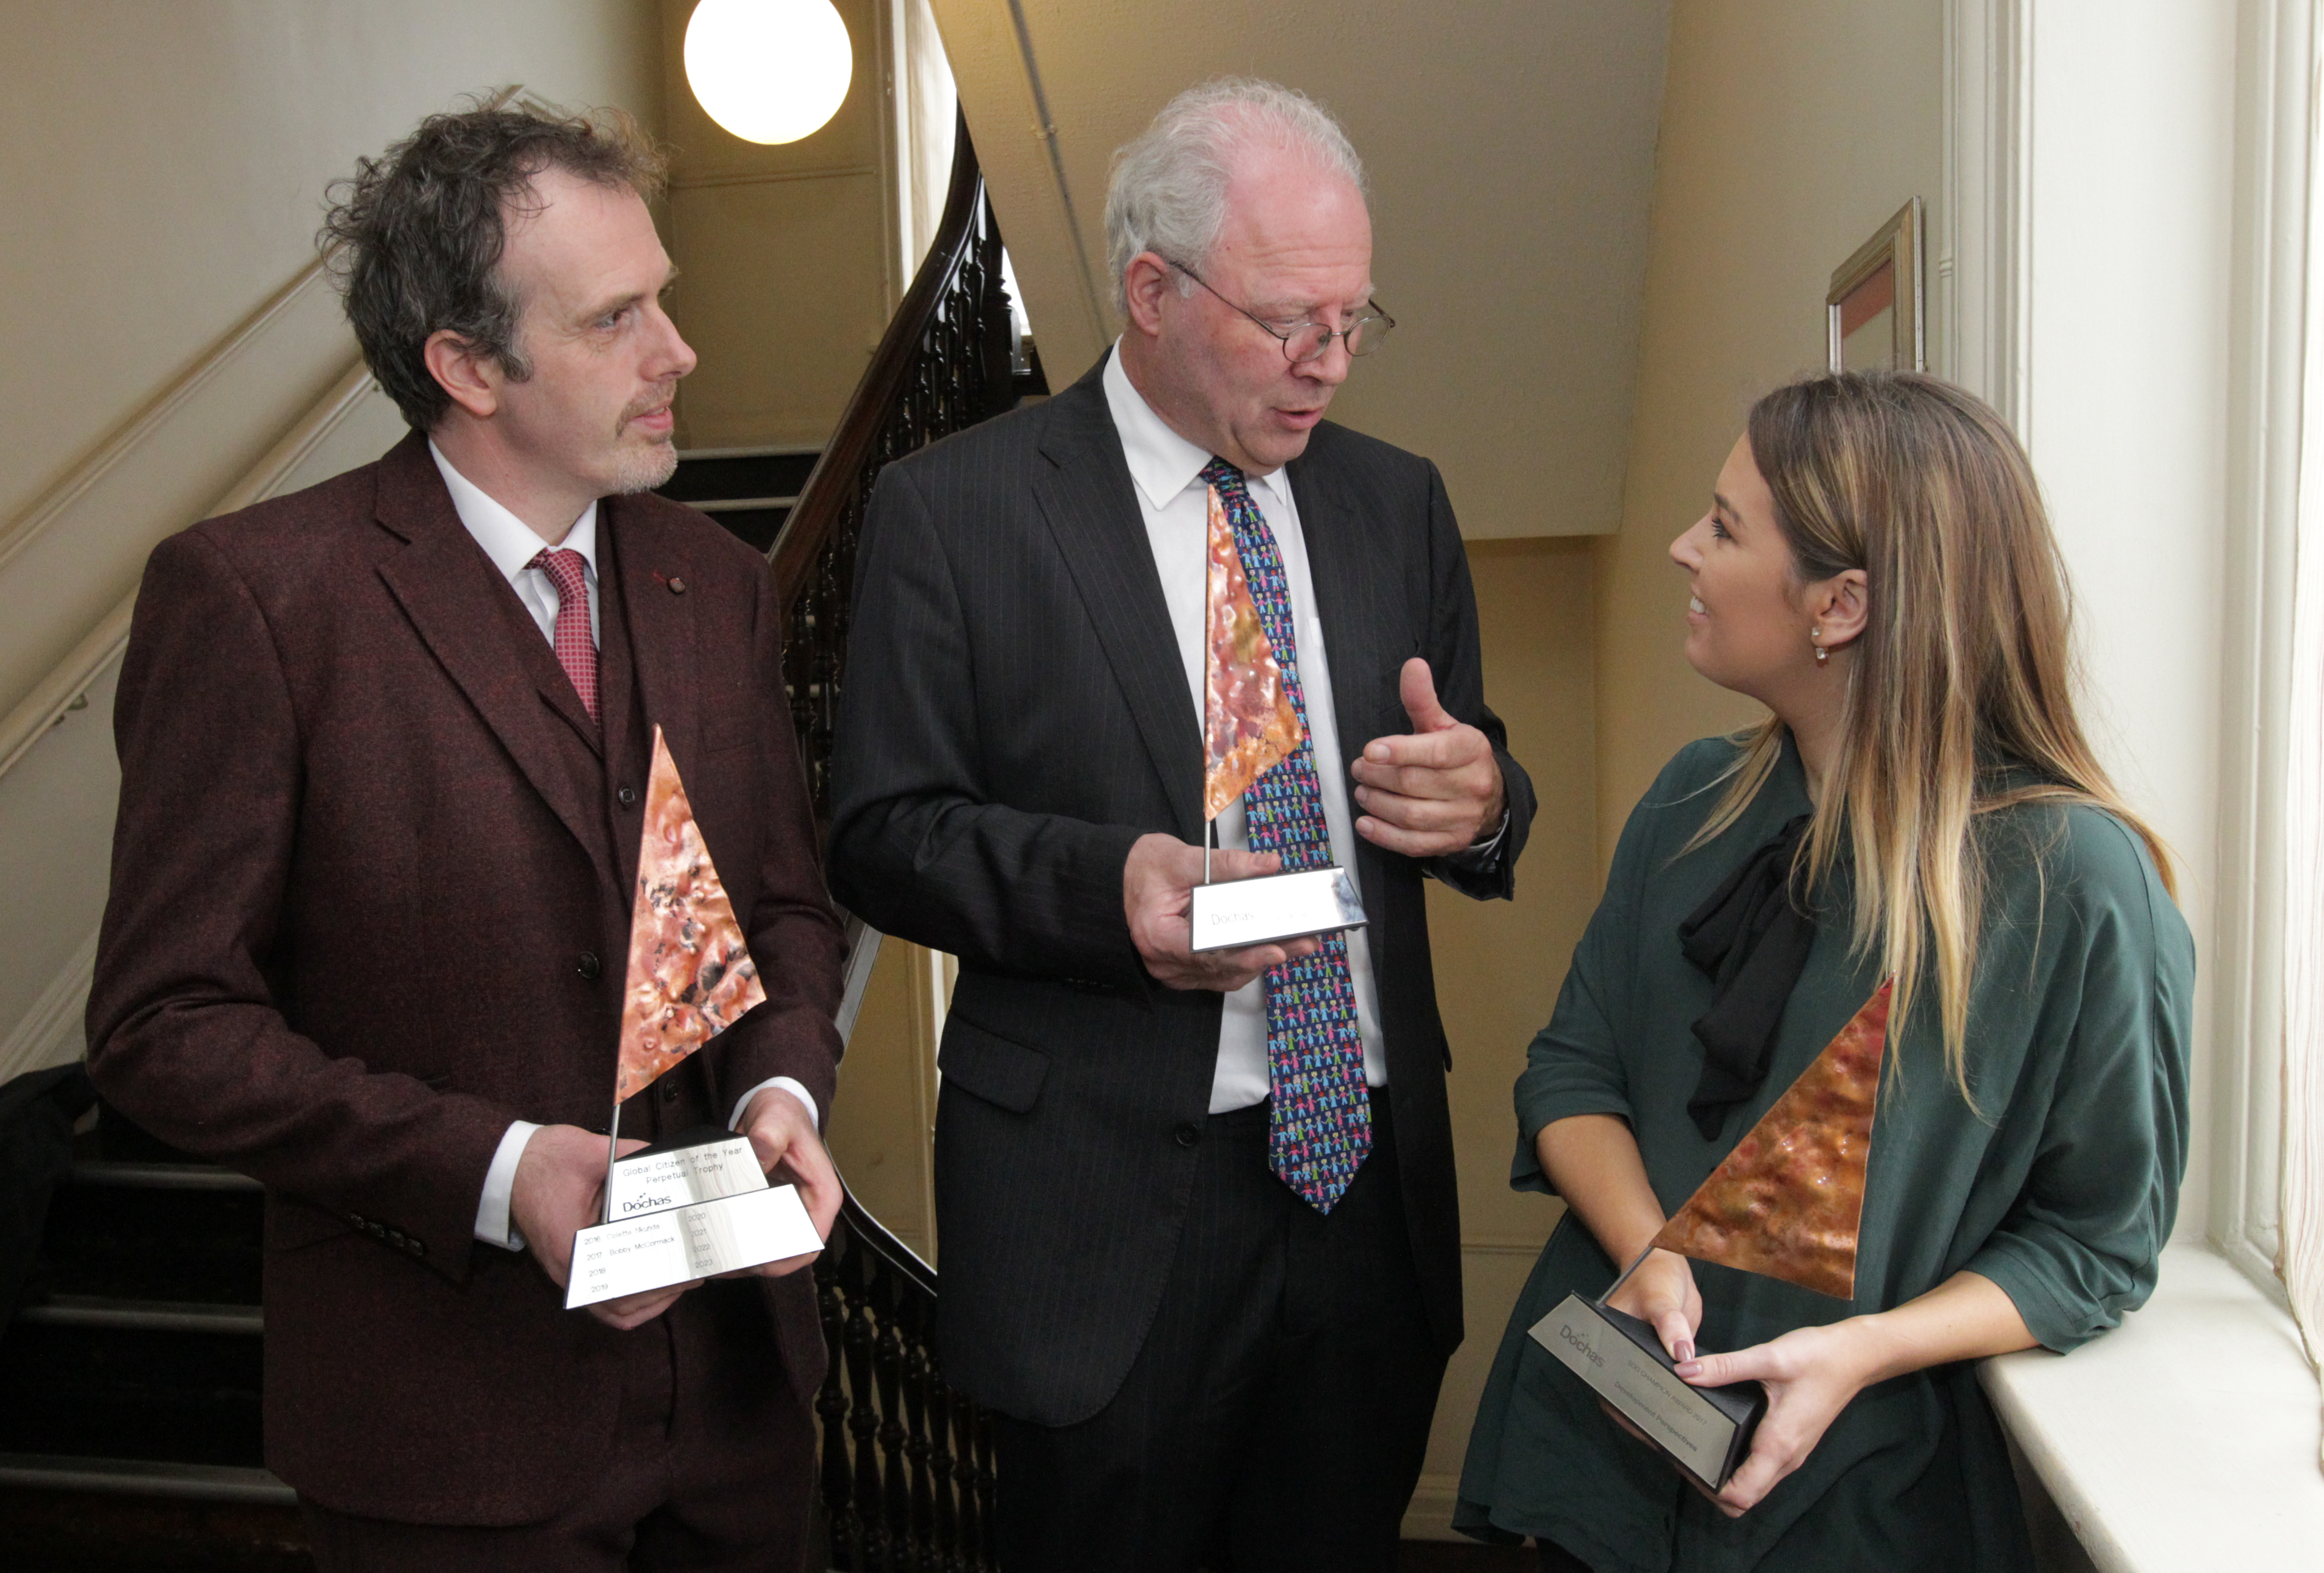 DP director Bobby McCormack and SDGchallenge coordinator Stephanie Kirwan with former Irish representative to the UN David Donoghue.